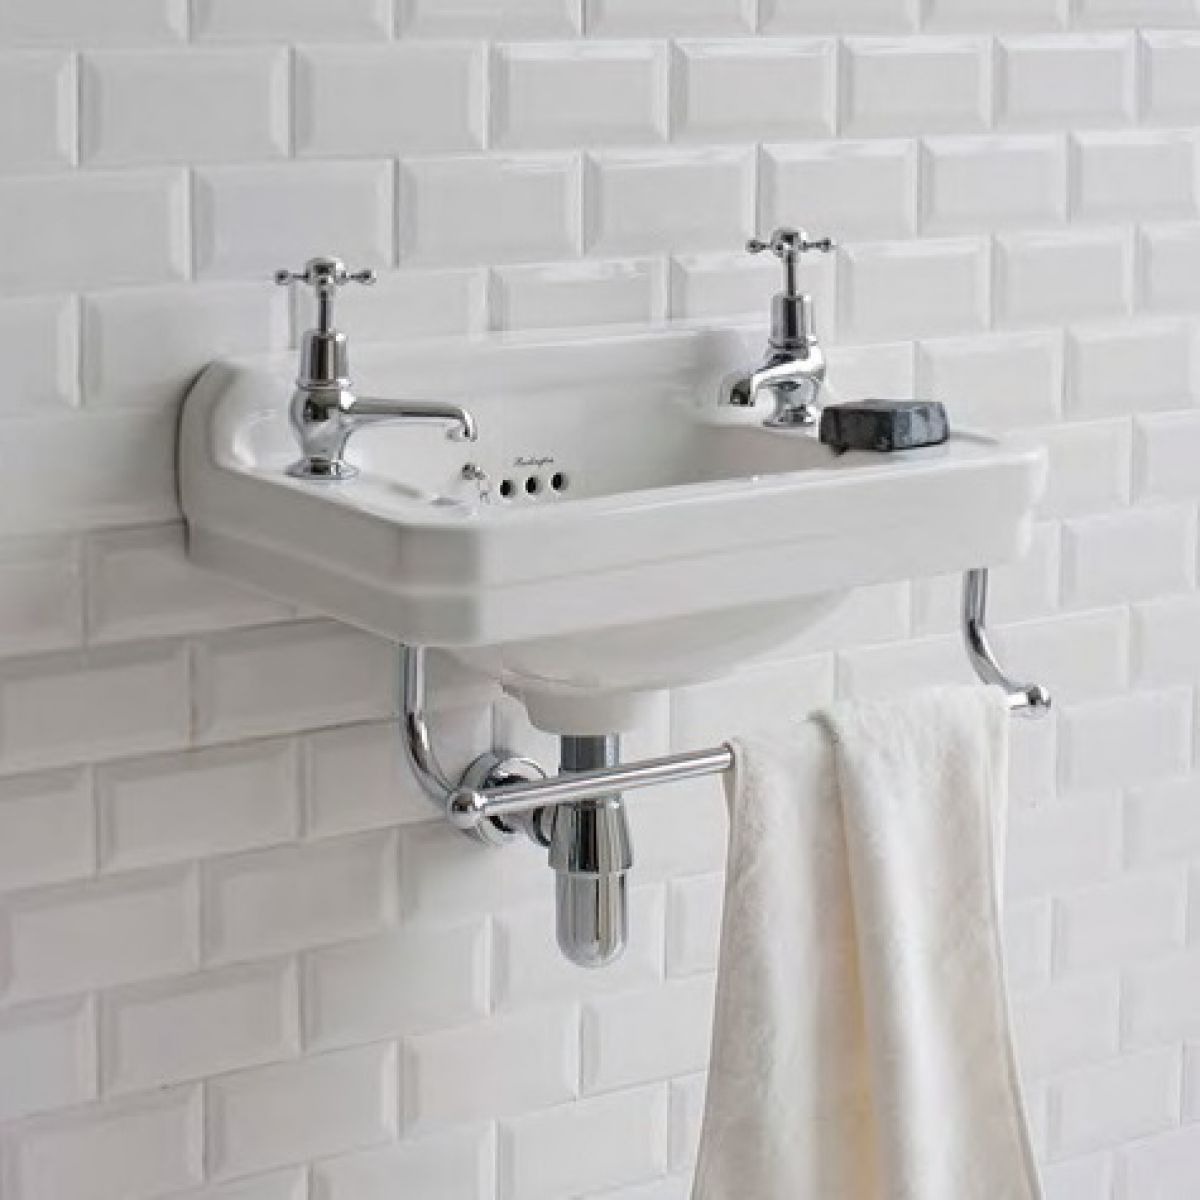 Toilet on pinterest corner bathroom sinks corner sink bathroom - Edwardian Cloakroom City Tiles And Bathrooms